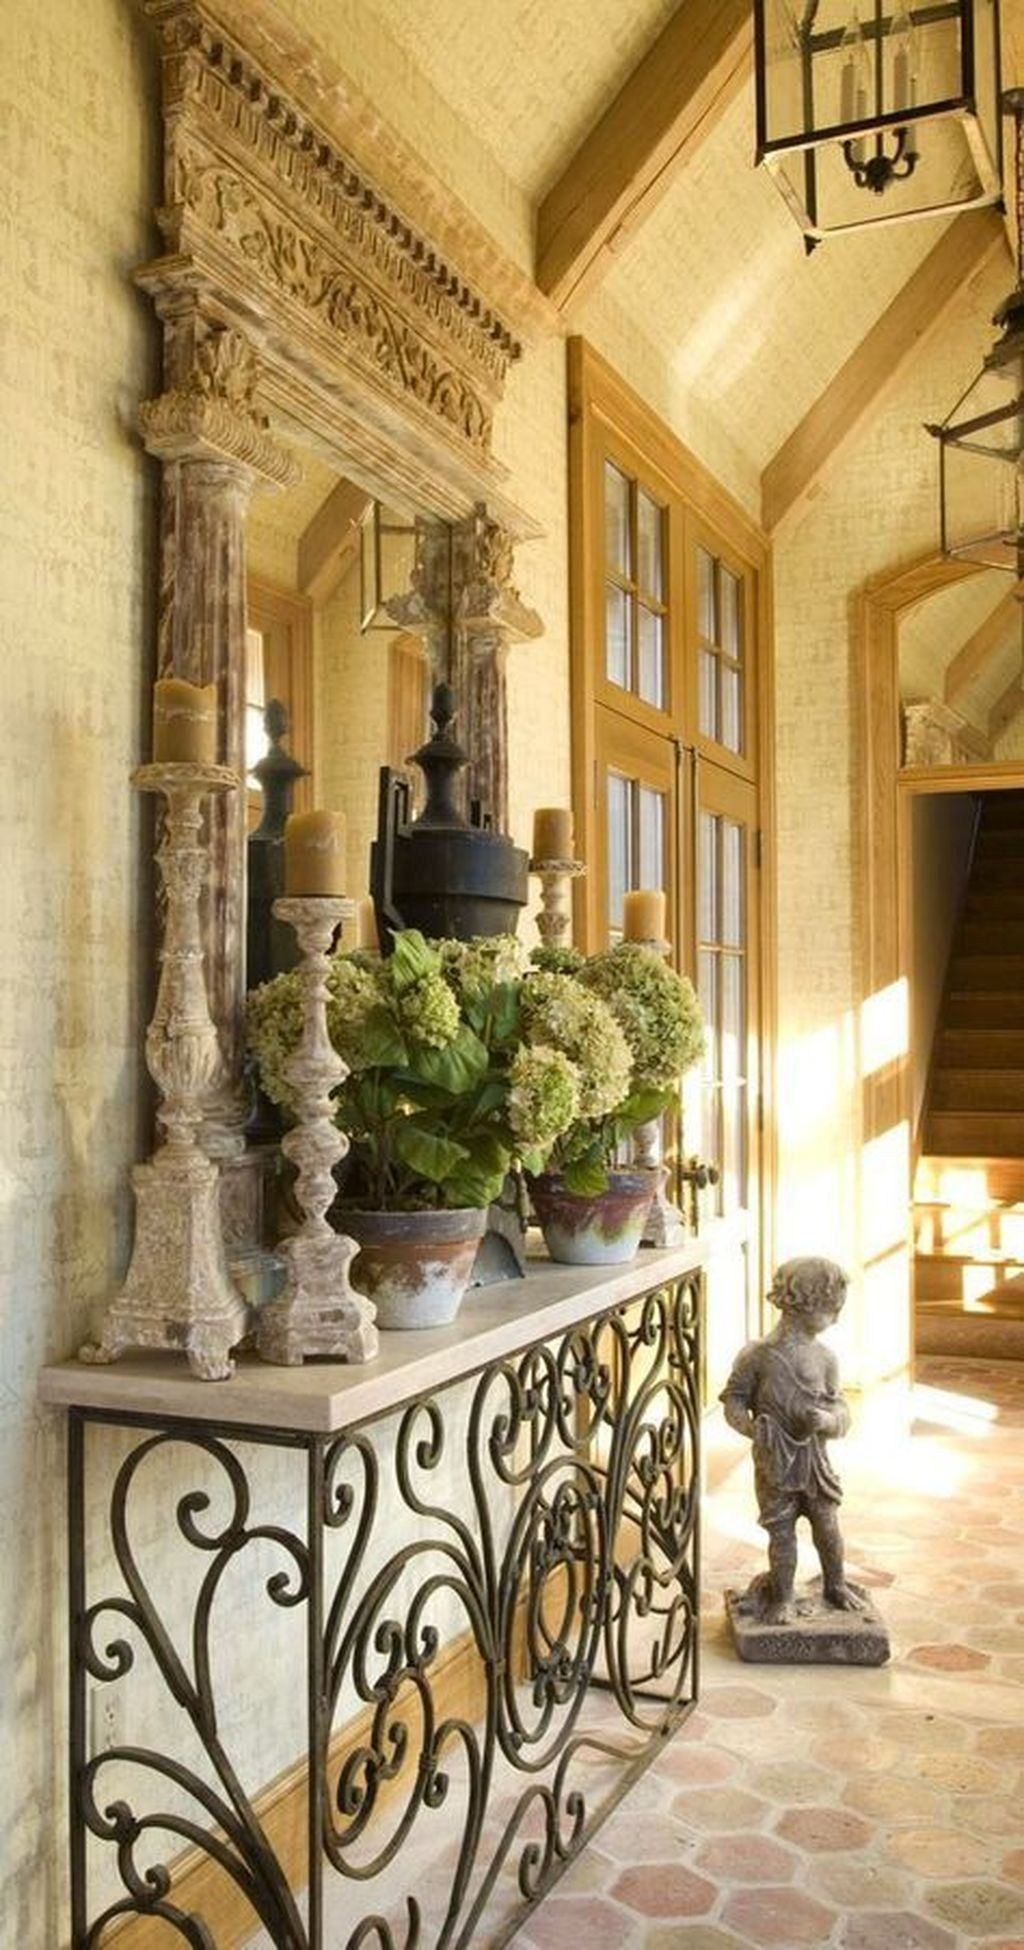 Awesome french home decoration ideas also decor  more rh pinterest